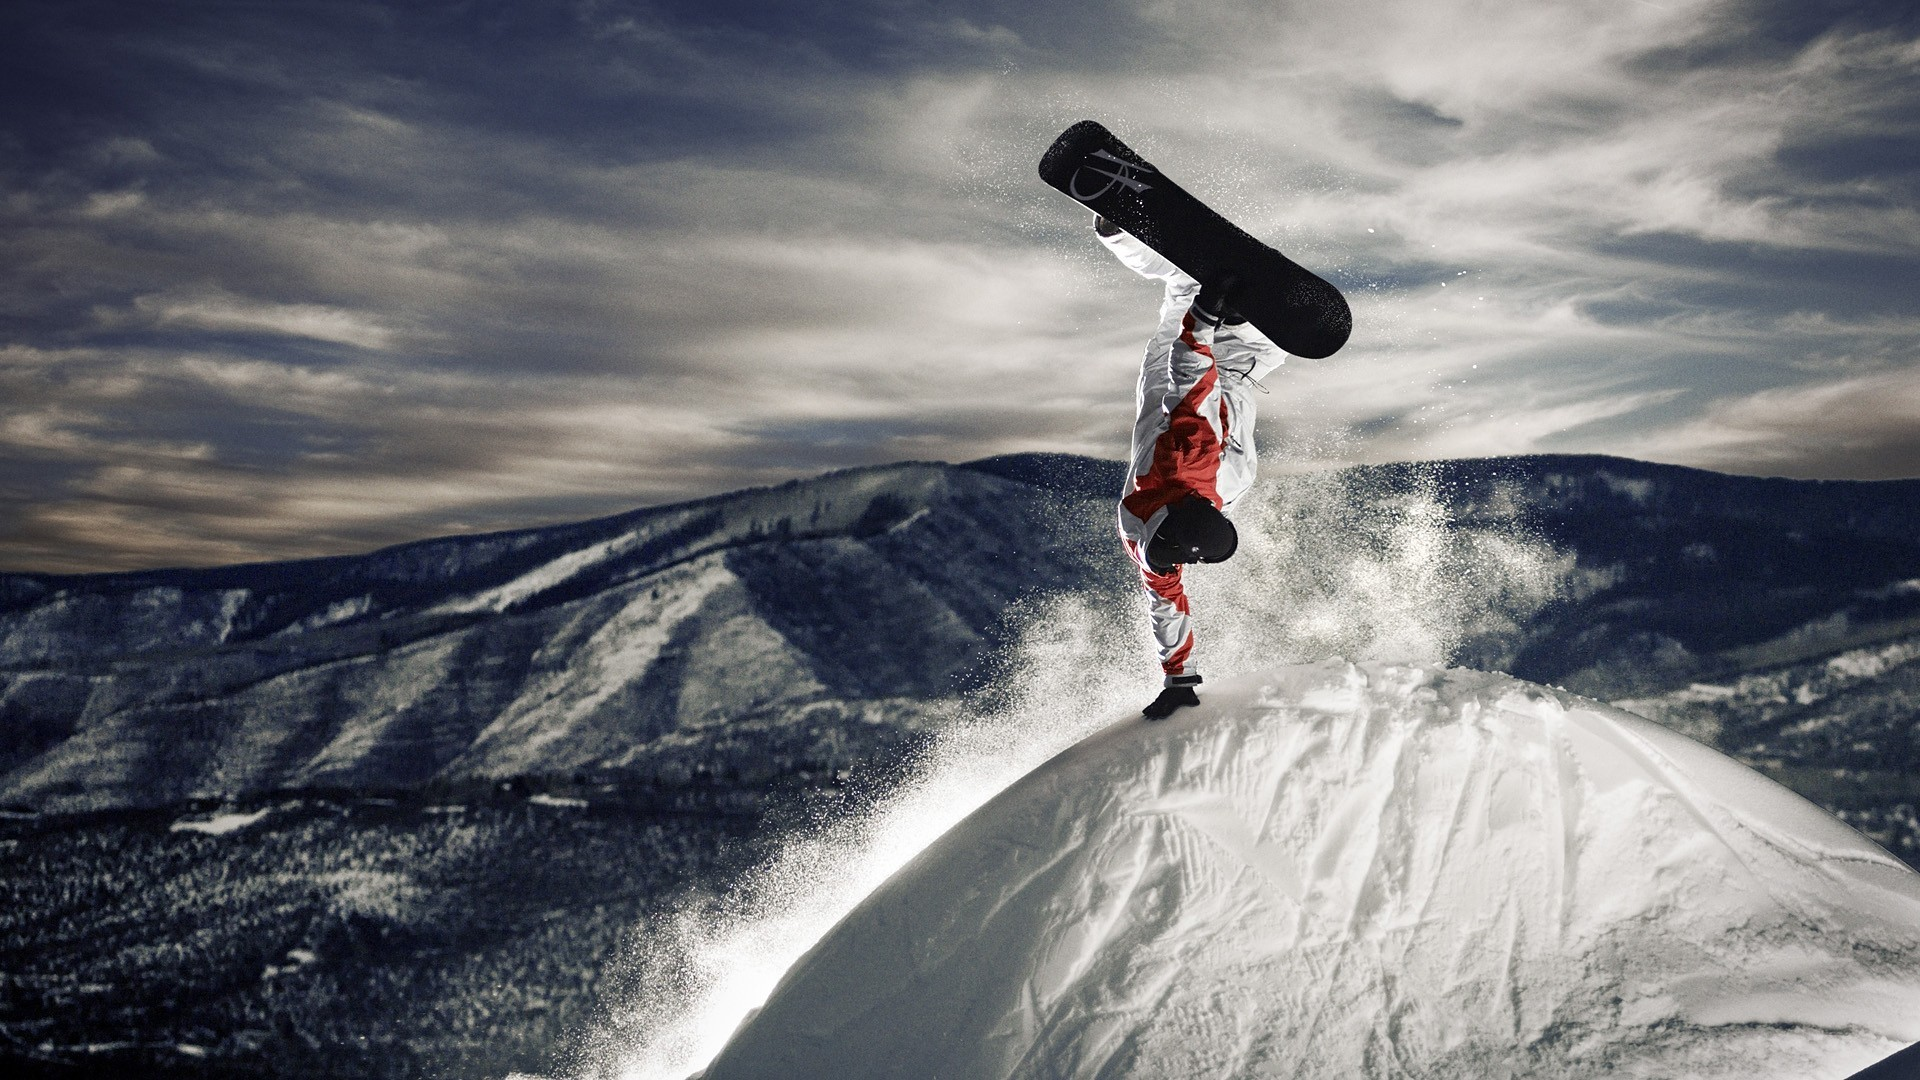 37482 download wallpaper Sports, Snowboarding screensavers and pictures for free